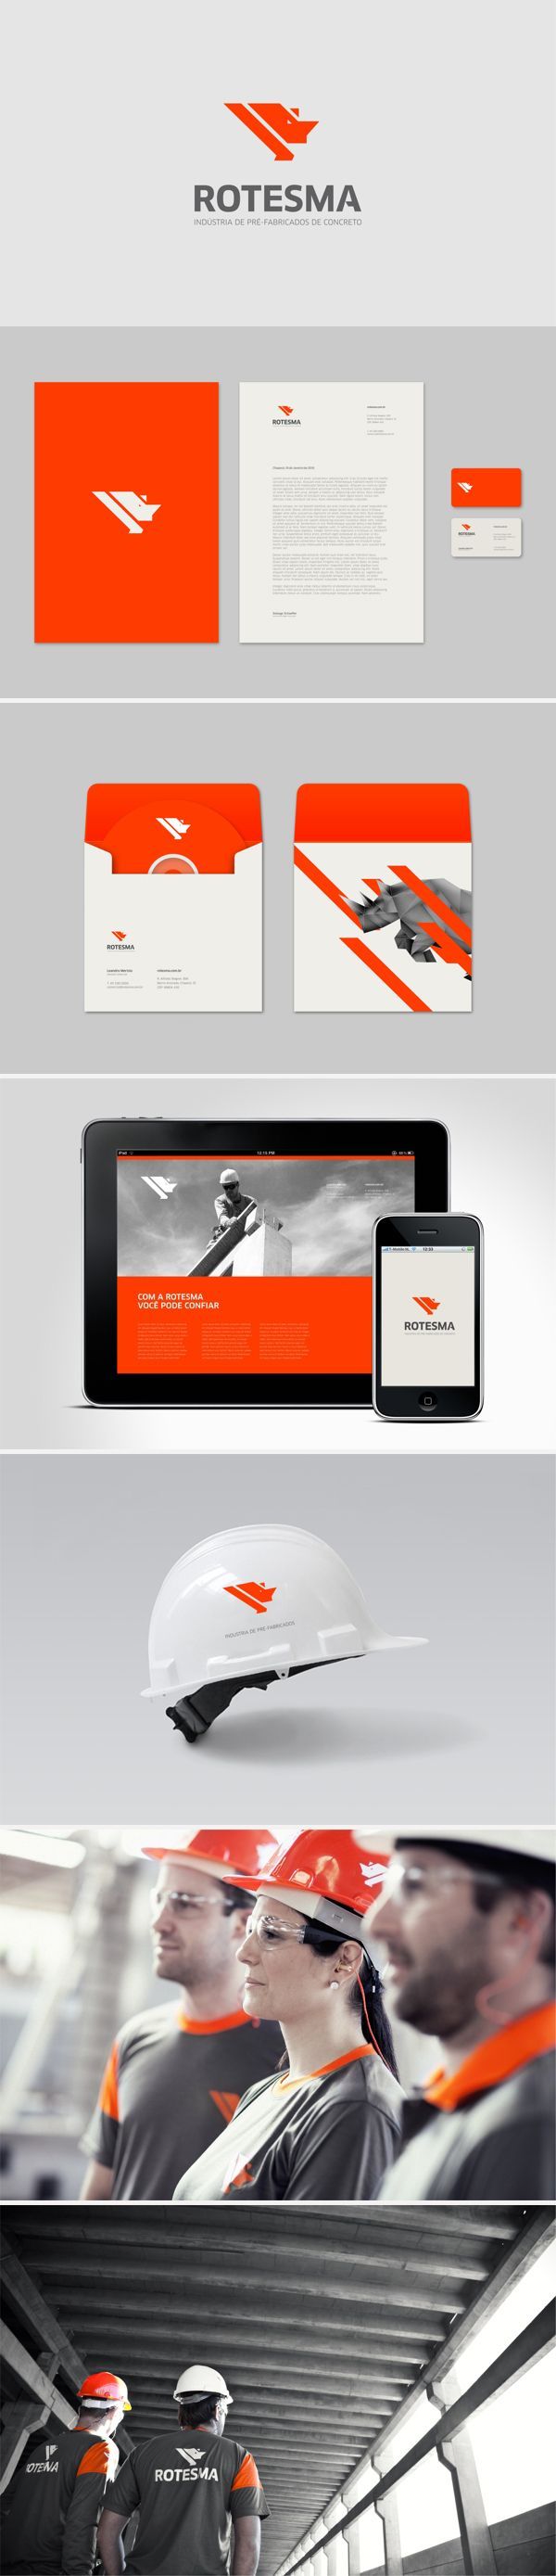 identity / Rotesma construction | #stationary #corporate #design #corporatedesign #identity #branding #marketing < repinned by www.BlickeDeeler.de | Visit our website: www.blickedeeler.de/leistungen/corporate-design